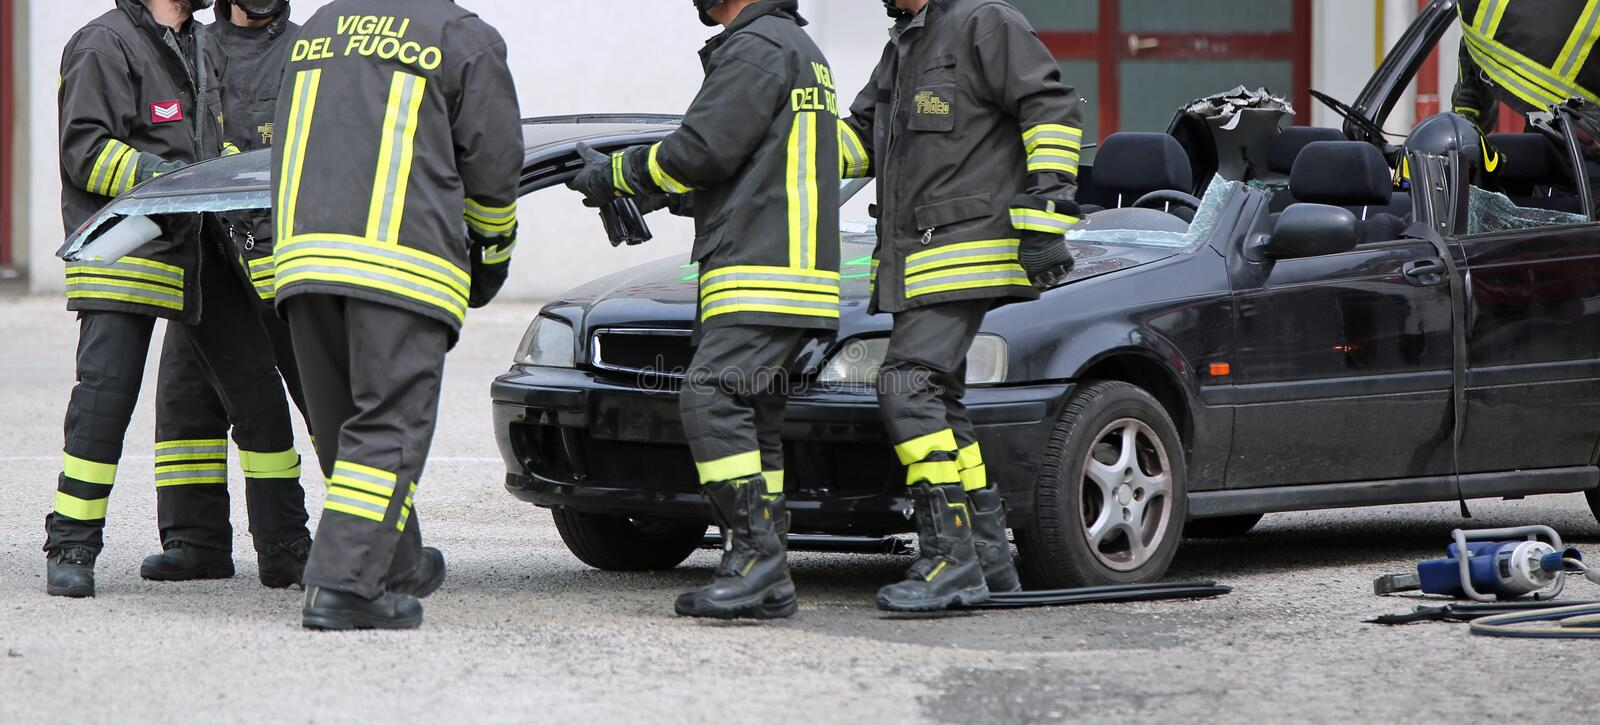 Italia, IT, Italy - May 10, 2018: Italian firefighters during a. Practice exercise with a broken car after the road accident royalty free stock photos